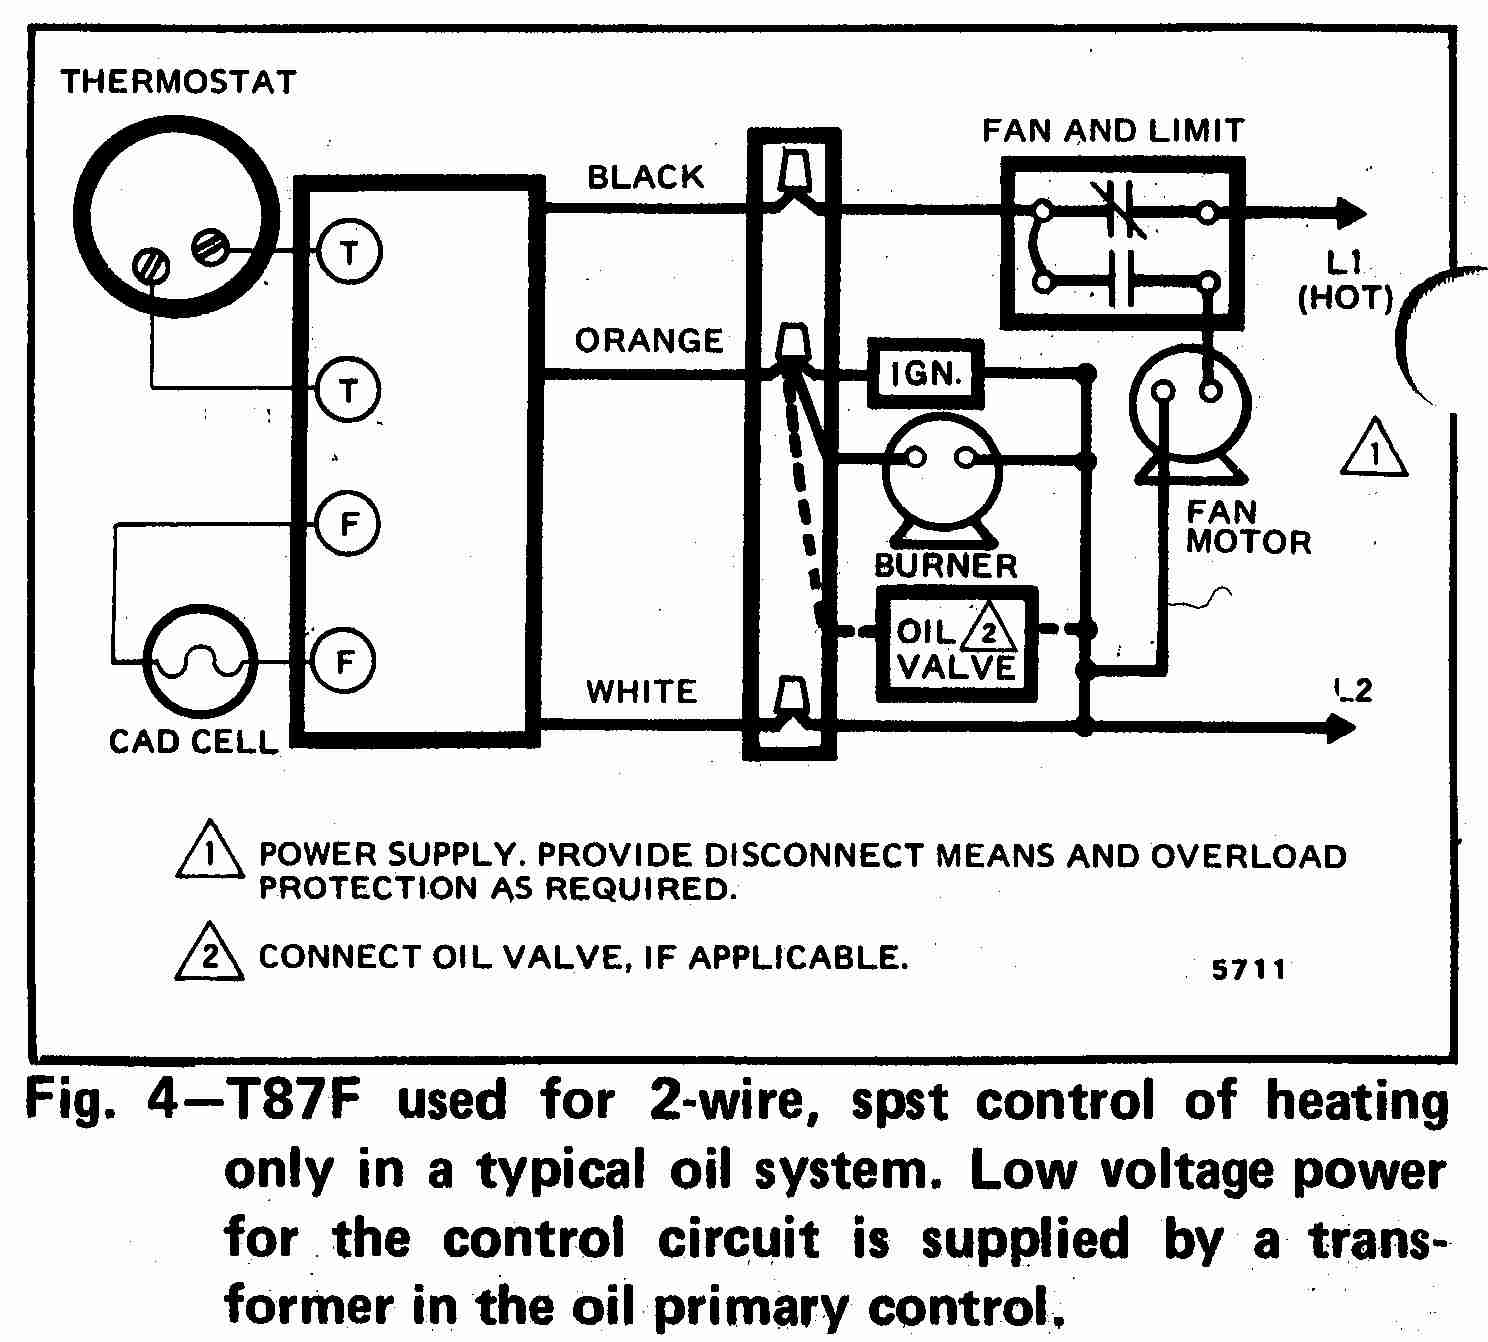 TT_T87F_0002_2W_DJF room thermostat wiring diagrams for hvac systems gas furnace wiring diagram at edmiracle.co